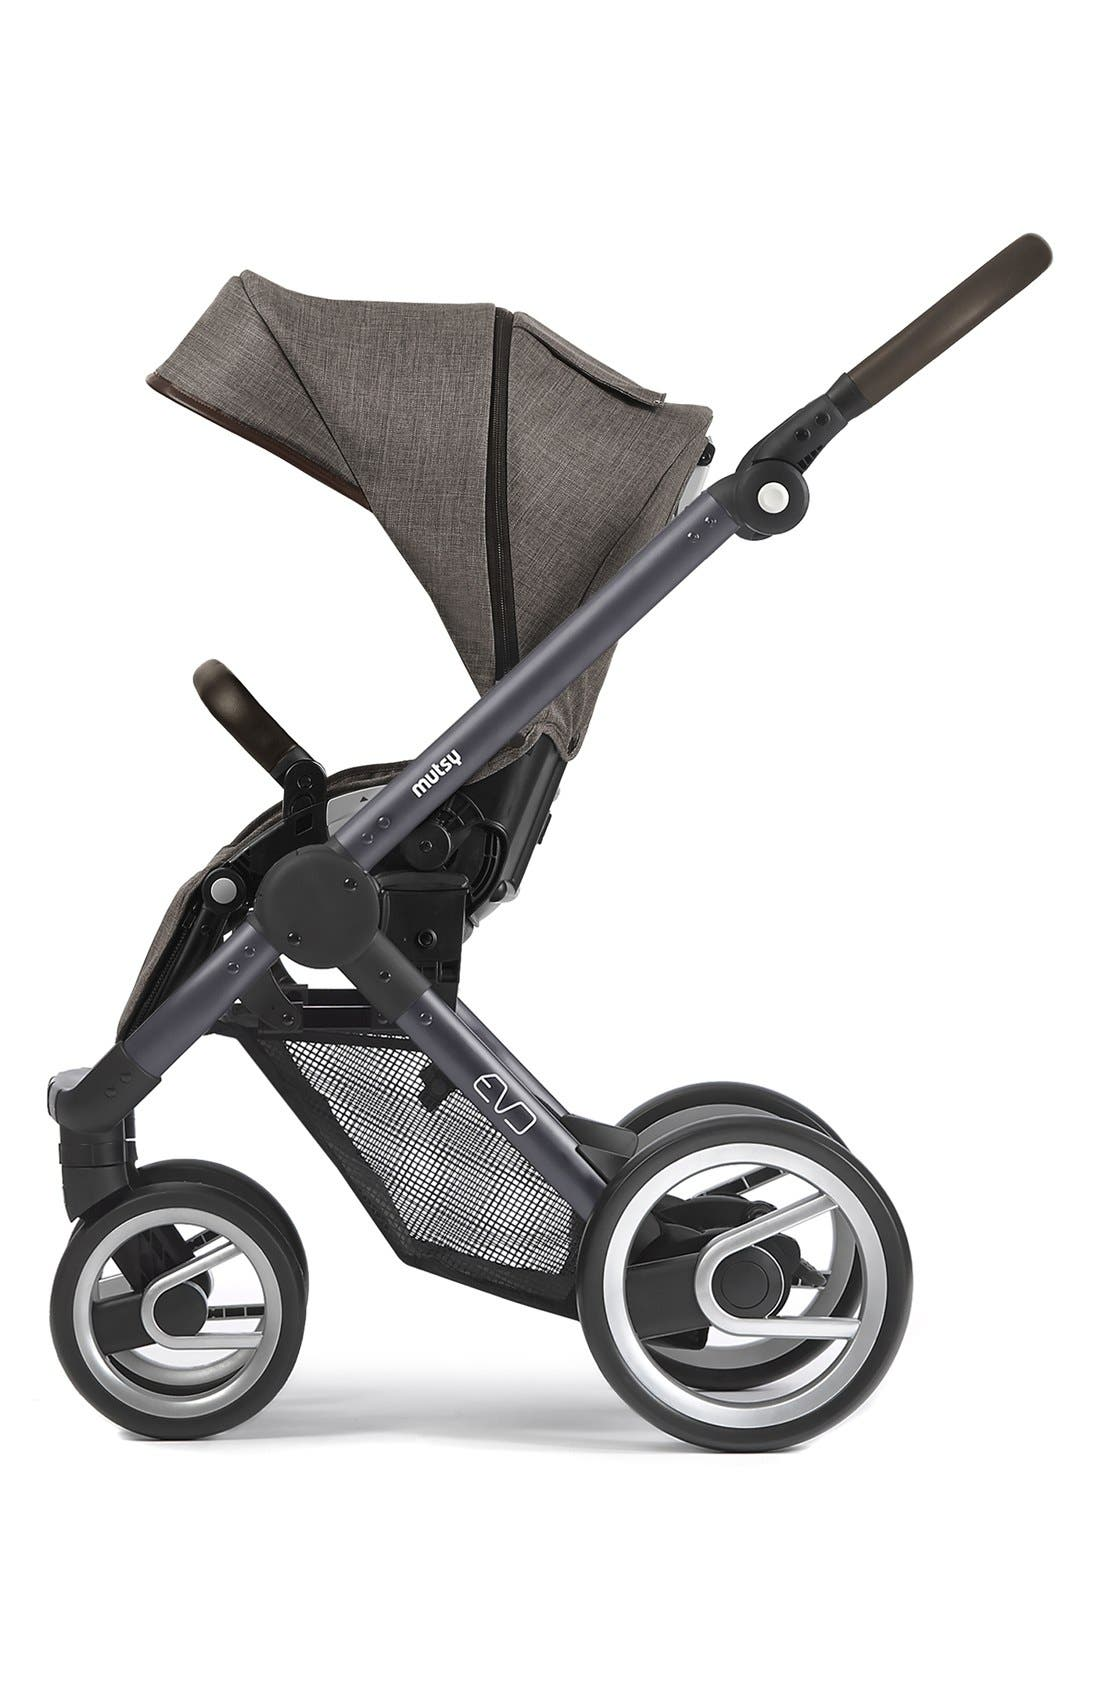 Evo - Farmer Earth Stroller,                         Main,                         color, Brown/ Dark Grey